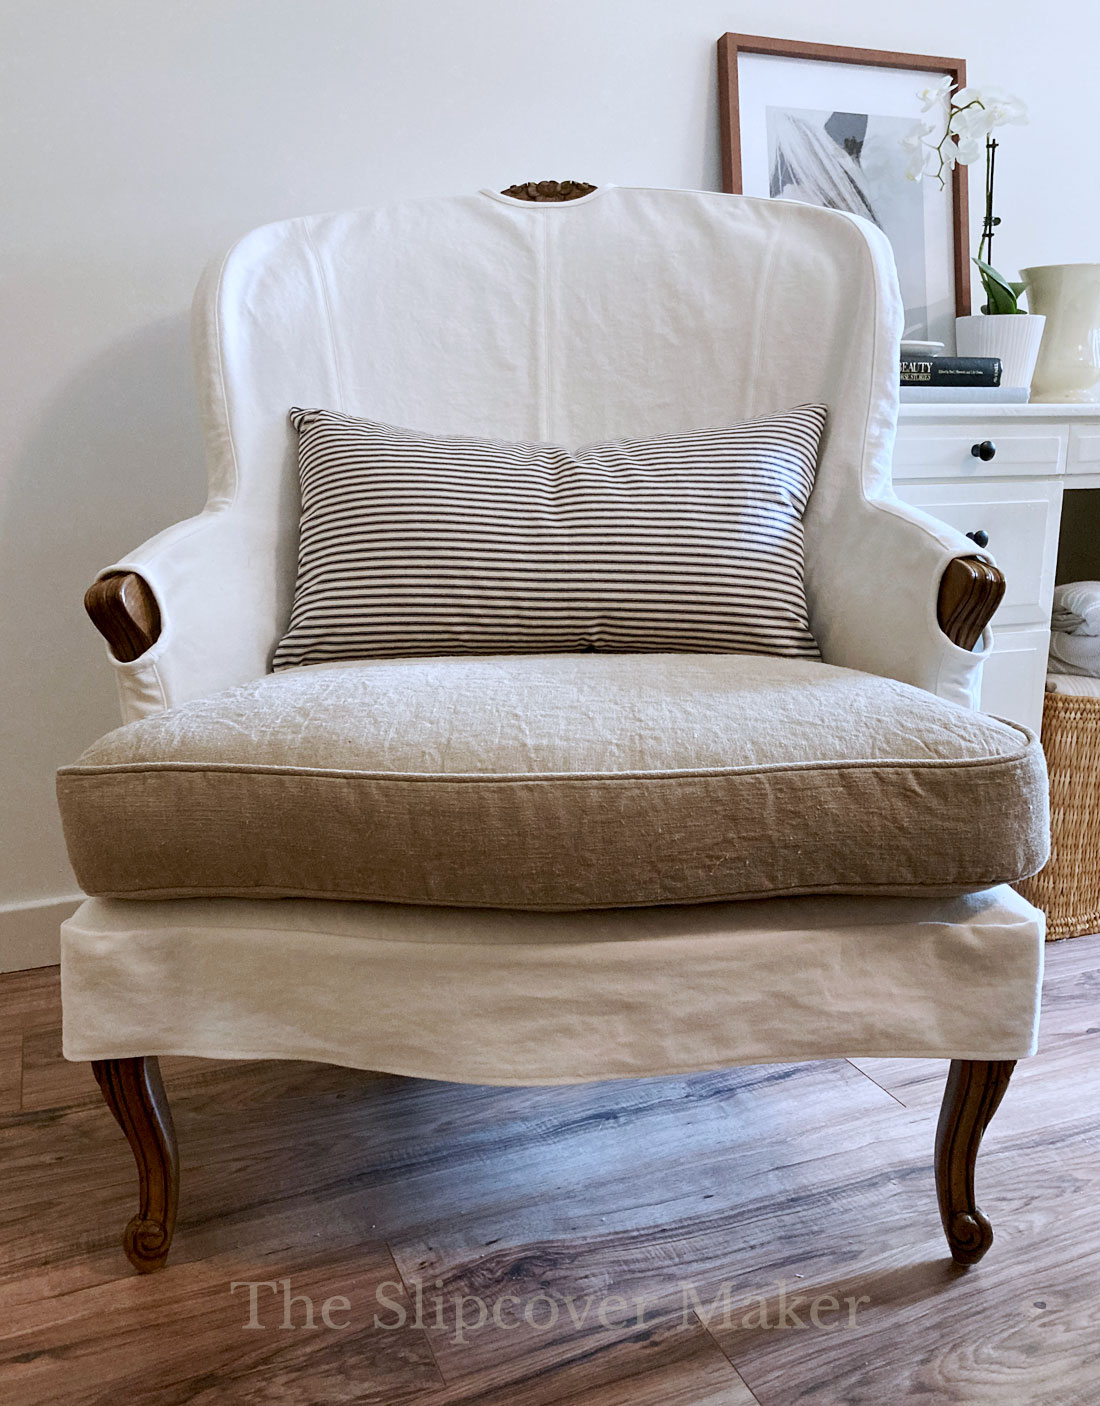 Custom-Fit Slipcover for Bergere Chair